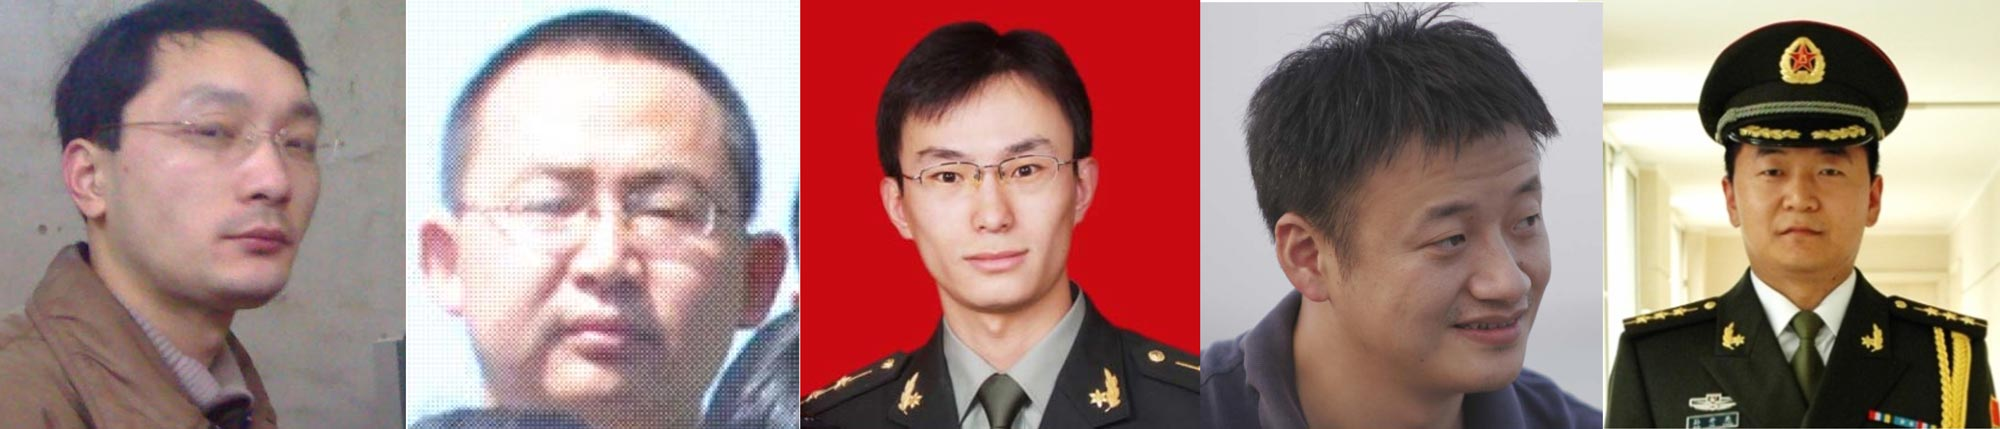 The US accused five Chinese military officers of cyberespionage. From left to right: Wen Xinyu, Wang Dong, Gu Chunhui, Huang Zhenyu, and Sun Kailiang.